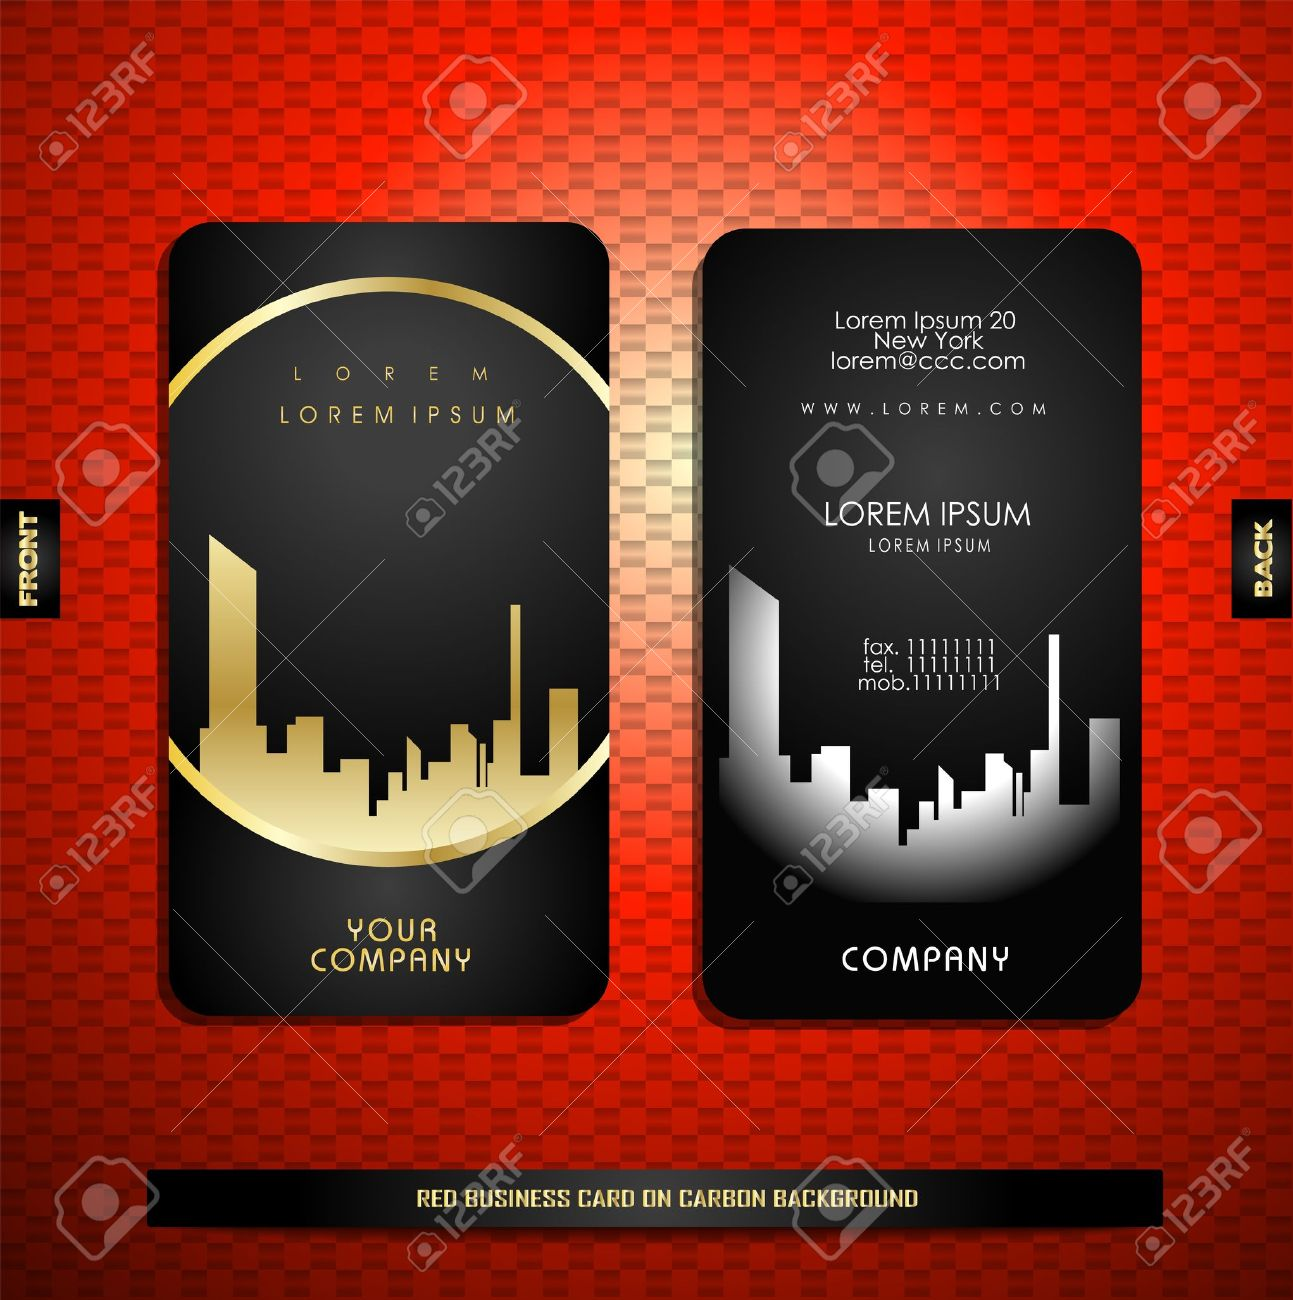 Black with gold business card on carbon background royalty free black with gold business card on carbon background stock vector 17050394 reheart Choice Image